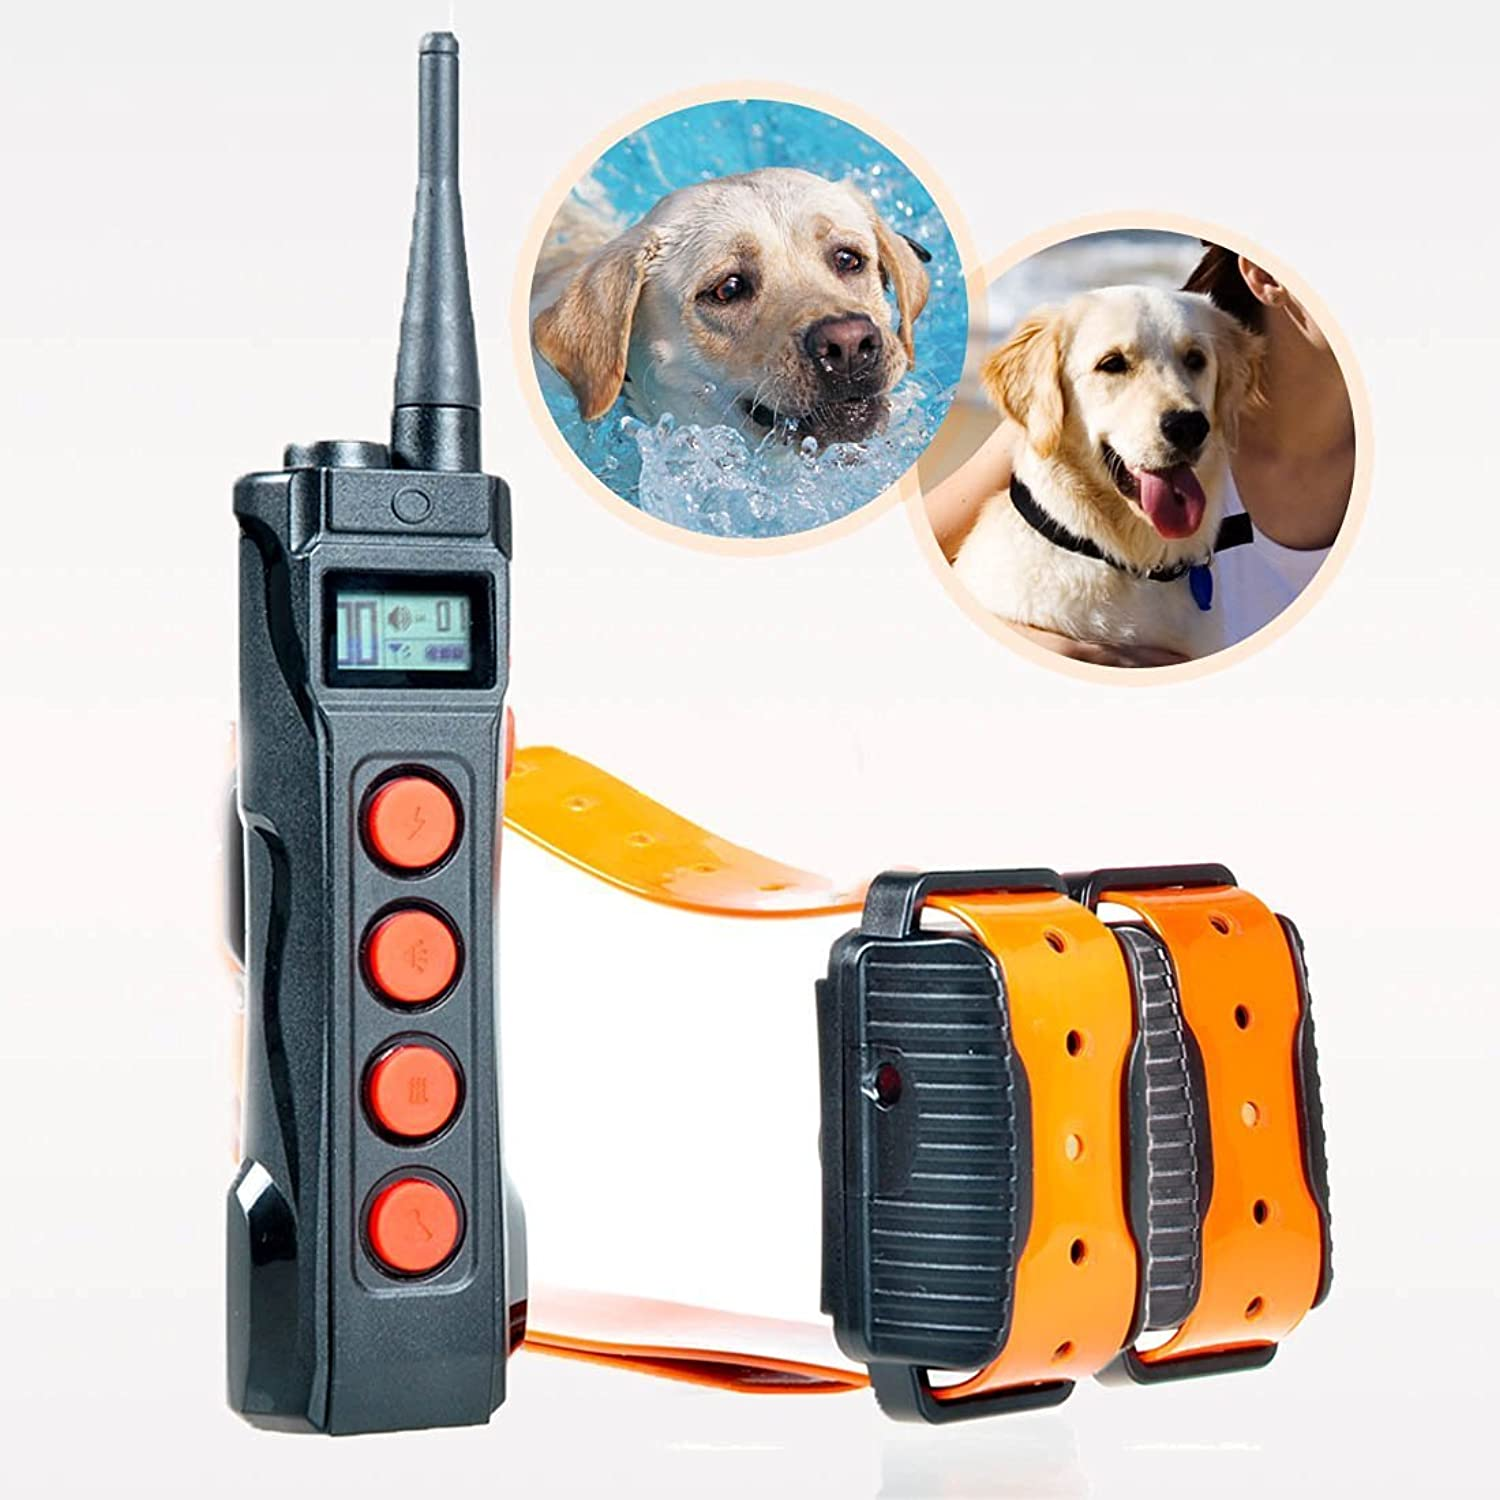 Aetertek Remote Dog Shock Collar 1 Year Warranty 1000M Range 5 Modes (Shock, Light, Vibration, Beep & Auto Anti bark) Safe Dogs Rechargeable & Waterproof Trainer (for 2 Dogs)